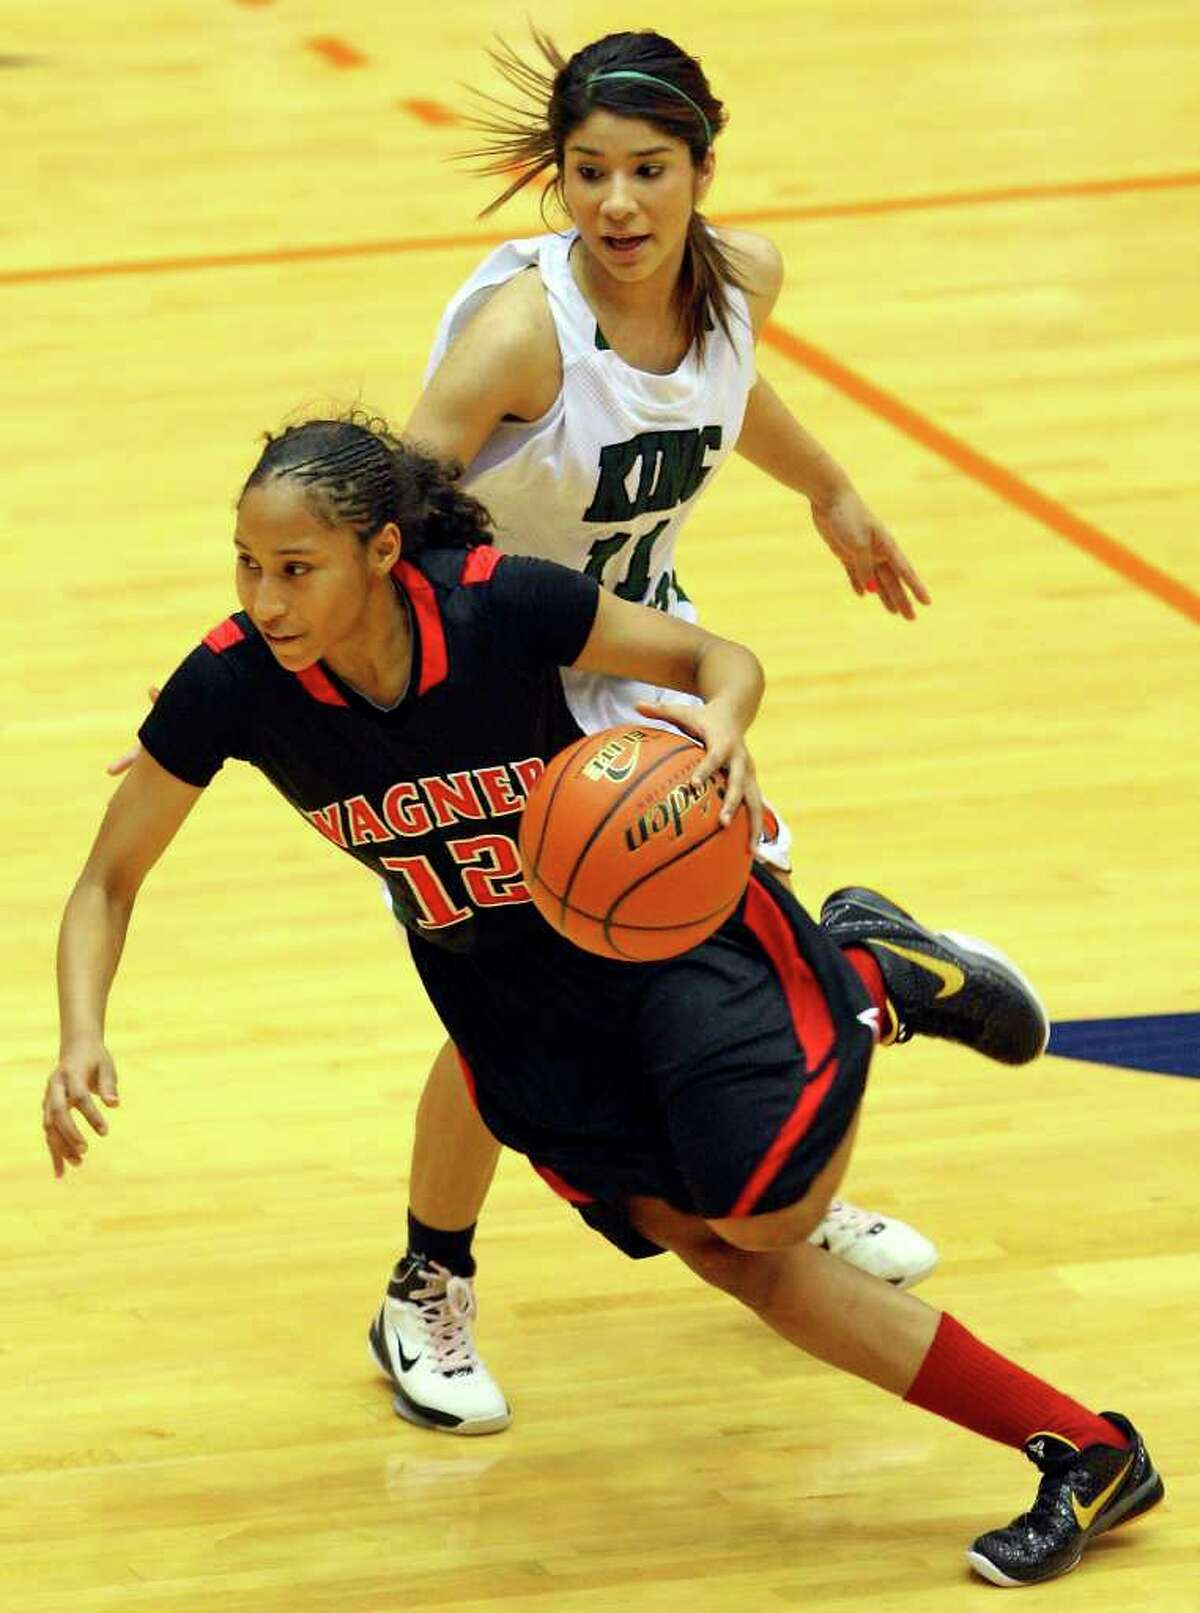 FOR SPORTS - Wagner's Aundrea Davis drives around Corpus Christi King's Melanie Cavazos during first half action of the Region IV-5A final Saturday Feb. 26, 2011 at the UTSA Convocation Center. (PHOTO BY EDWARD A. ORNELAS/eaornelas@express-news.net)